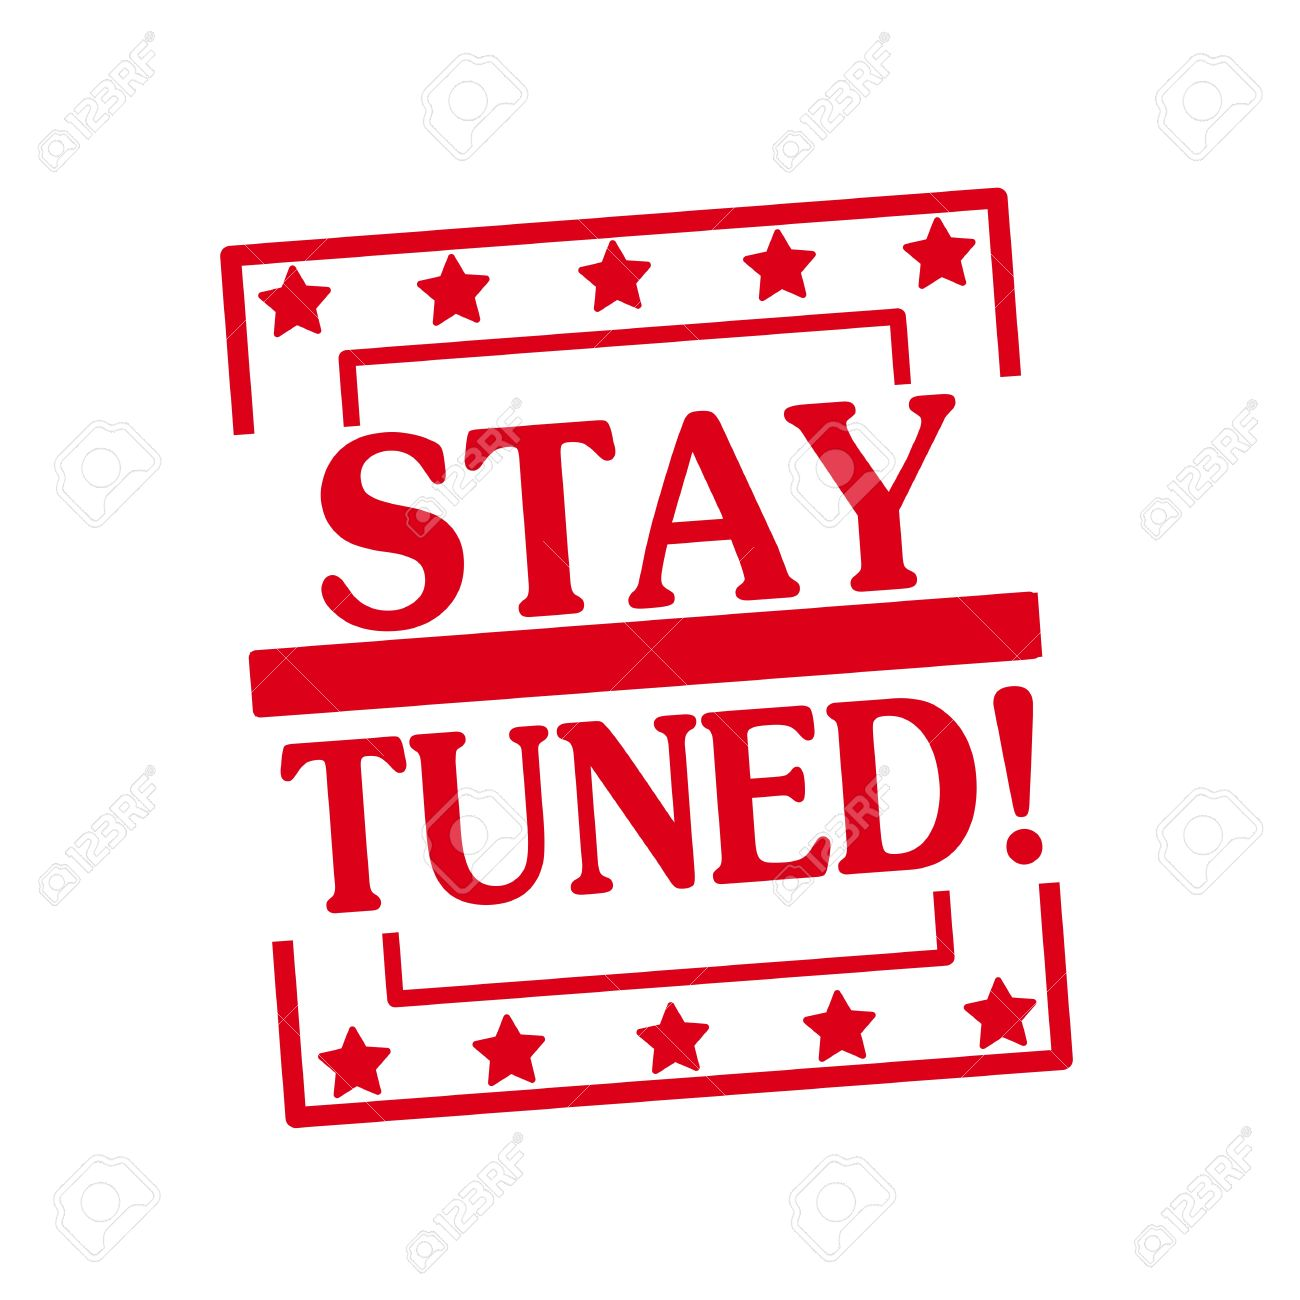 stay tuned red stamp text on squares on white background stock photo